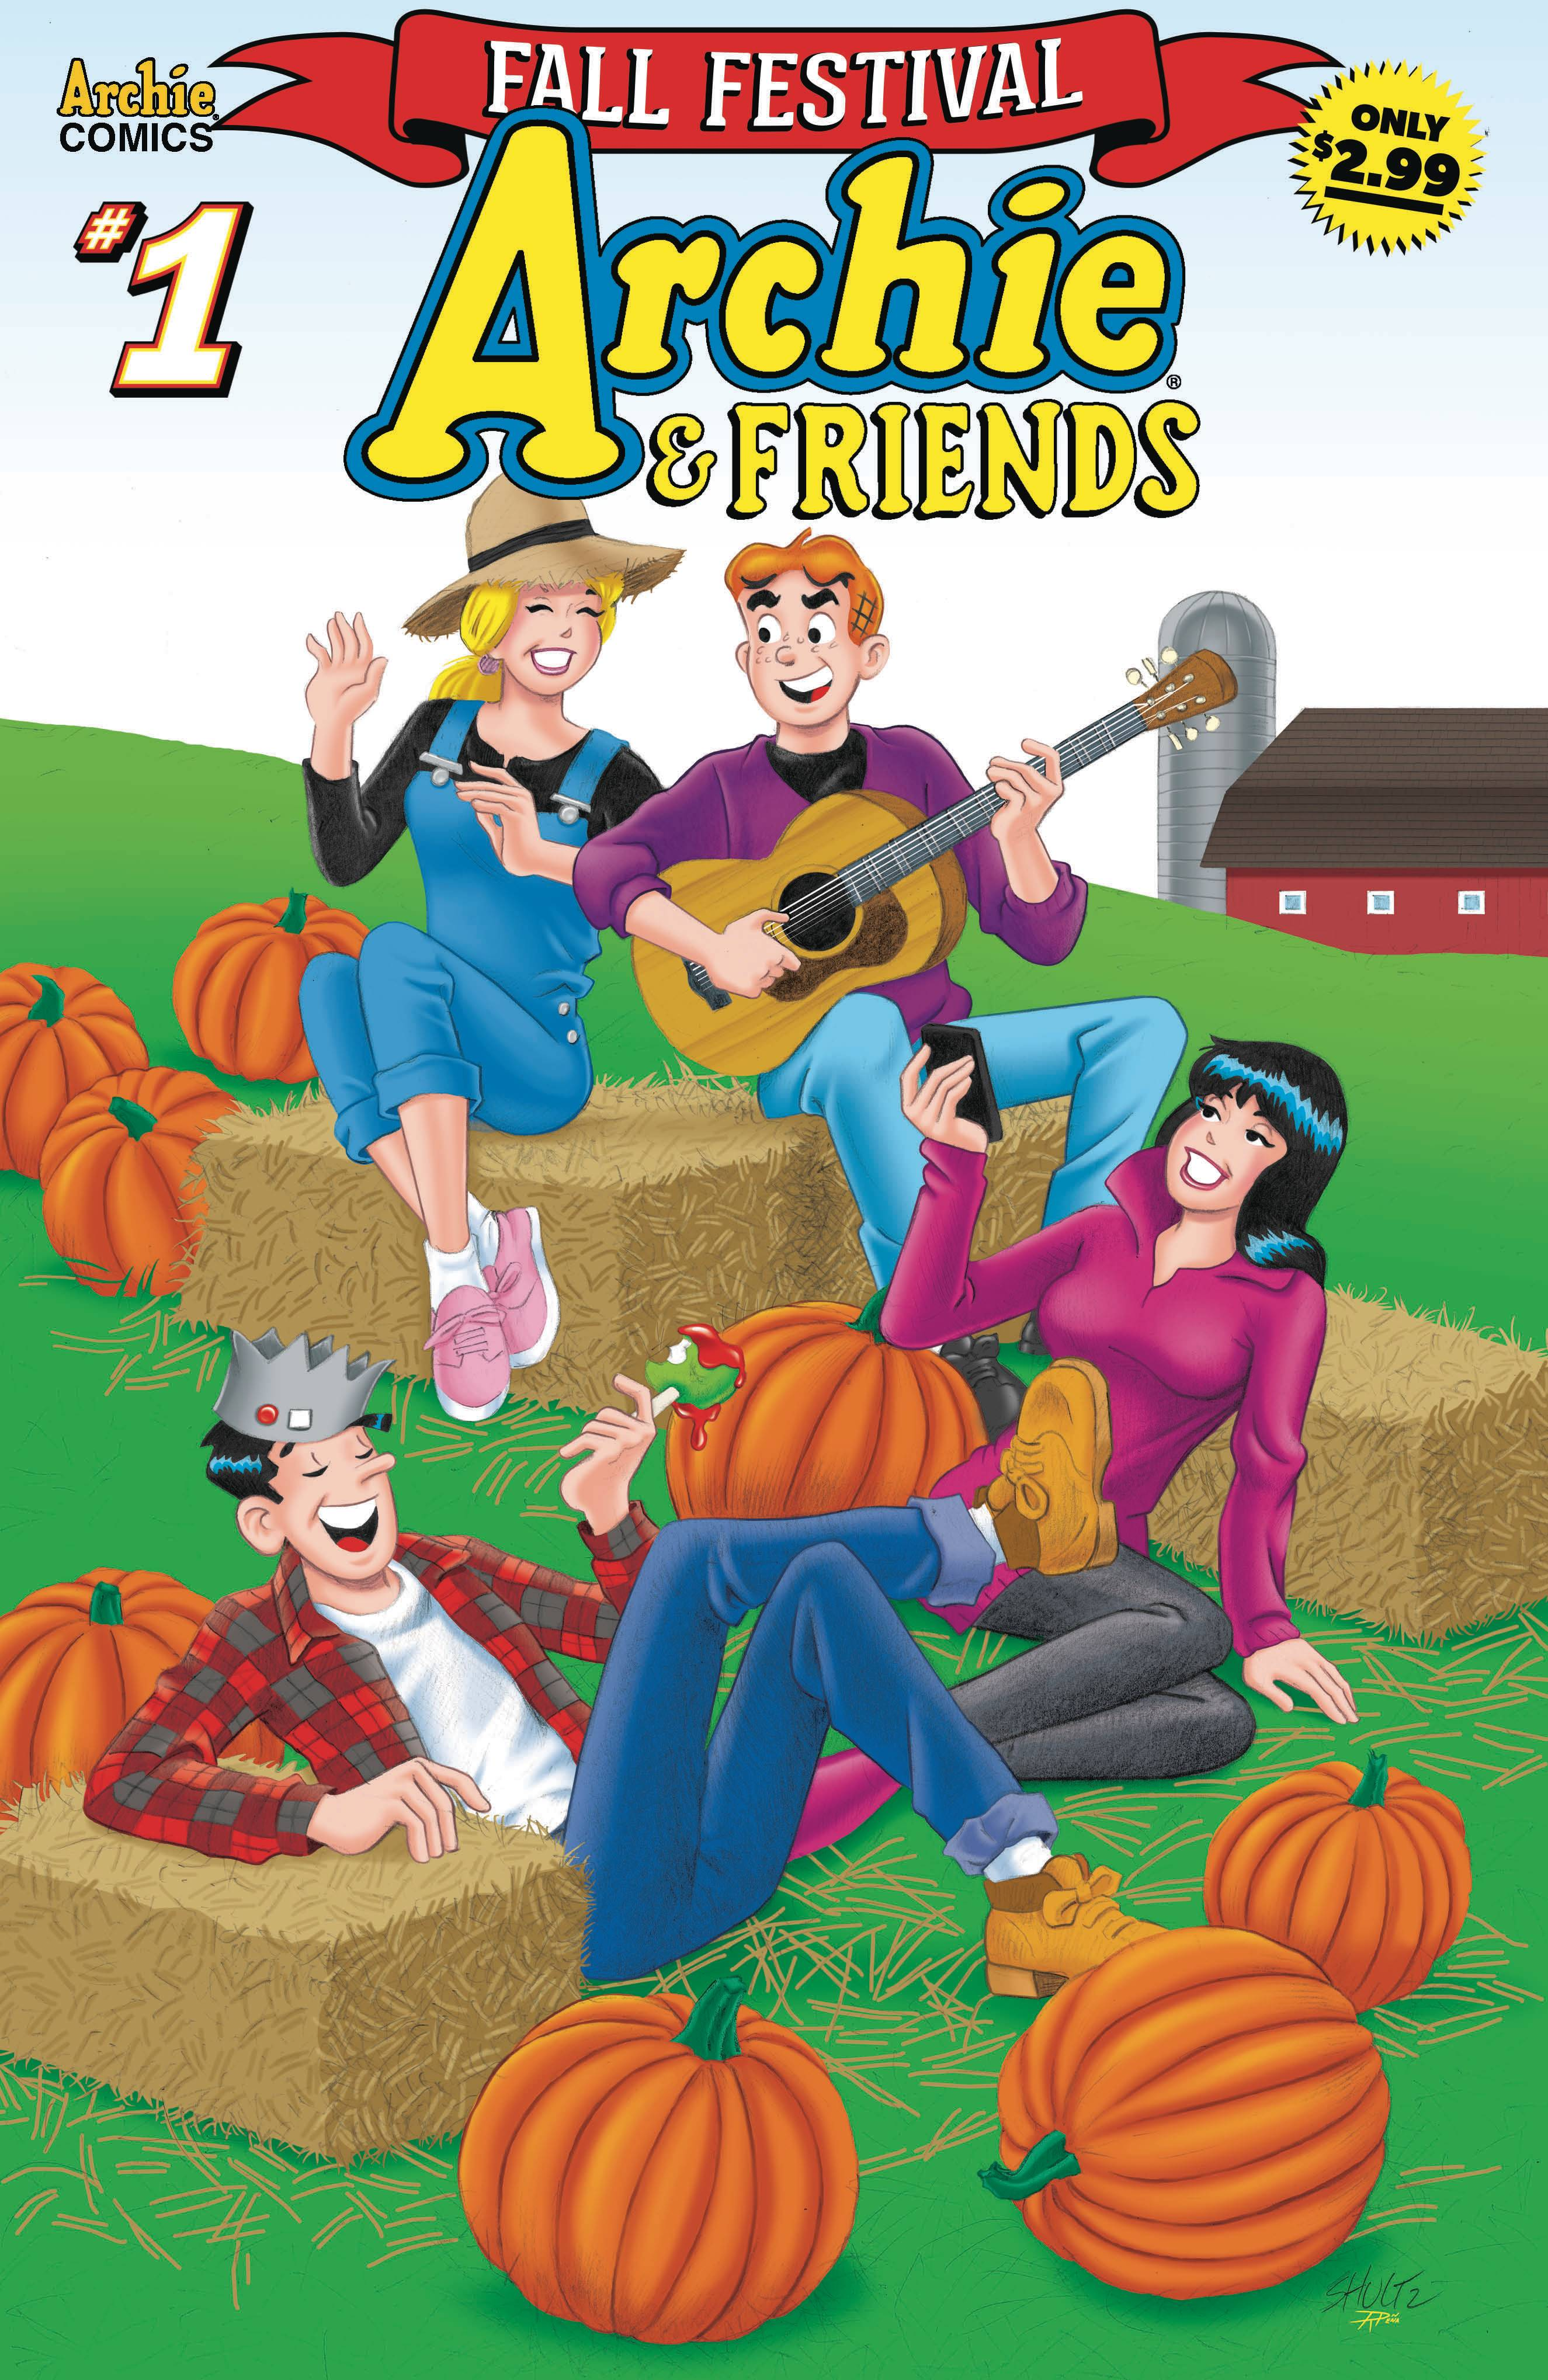 ARCHIE & FRIENDS FALL FESTIVAL